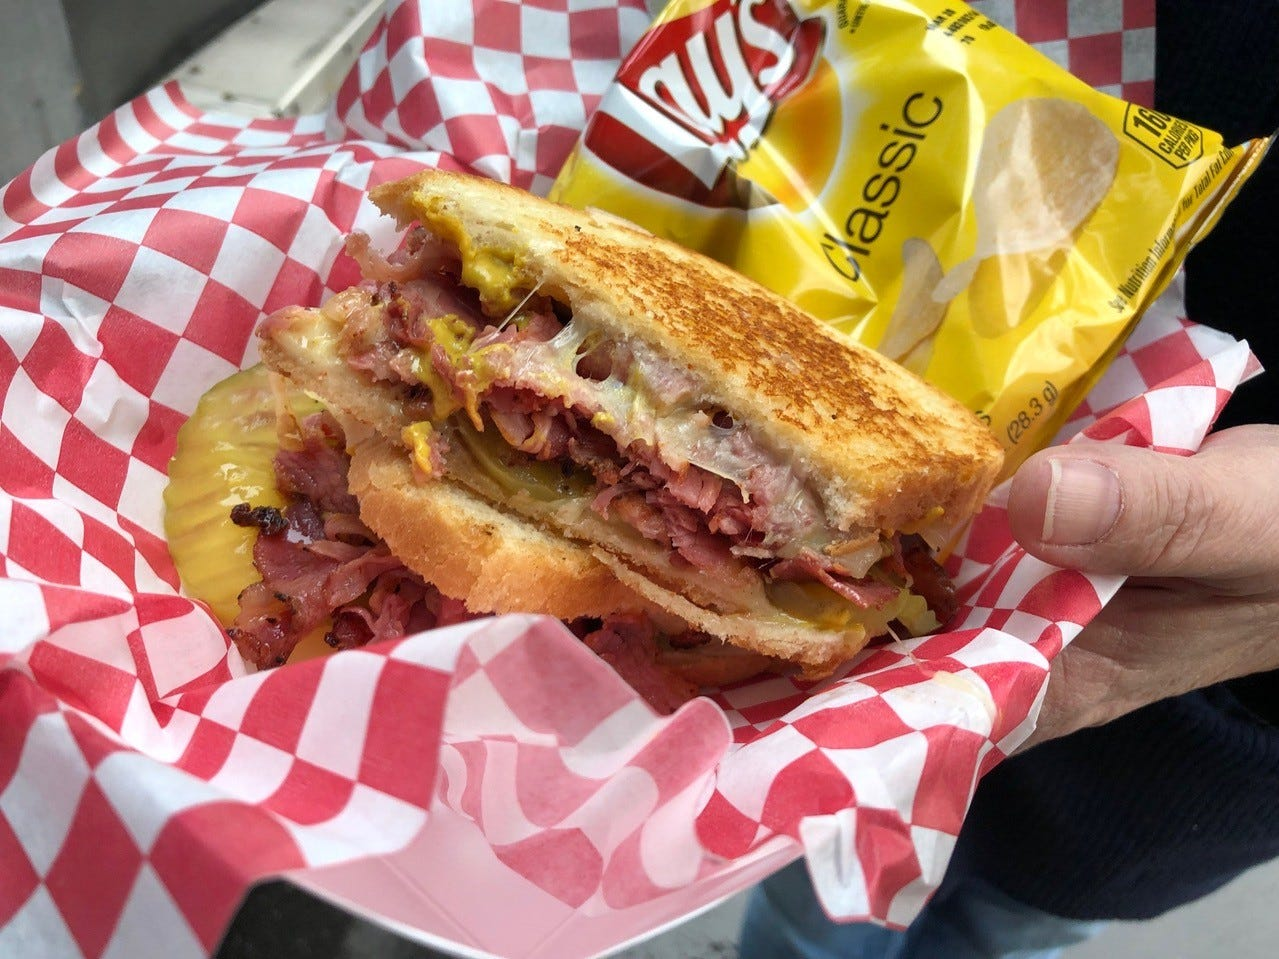 Blue Shield employee Mary Turner always orders the hot pastrami sandwich from What the Truck food truck.